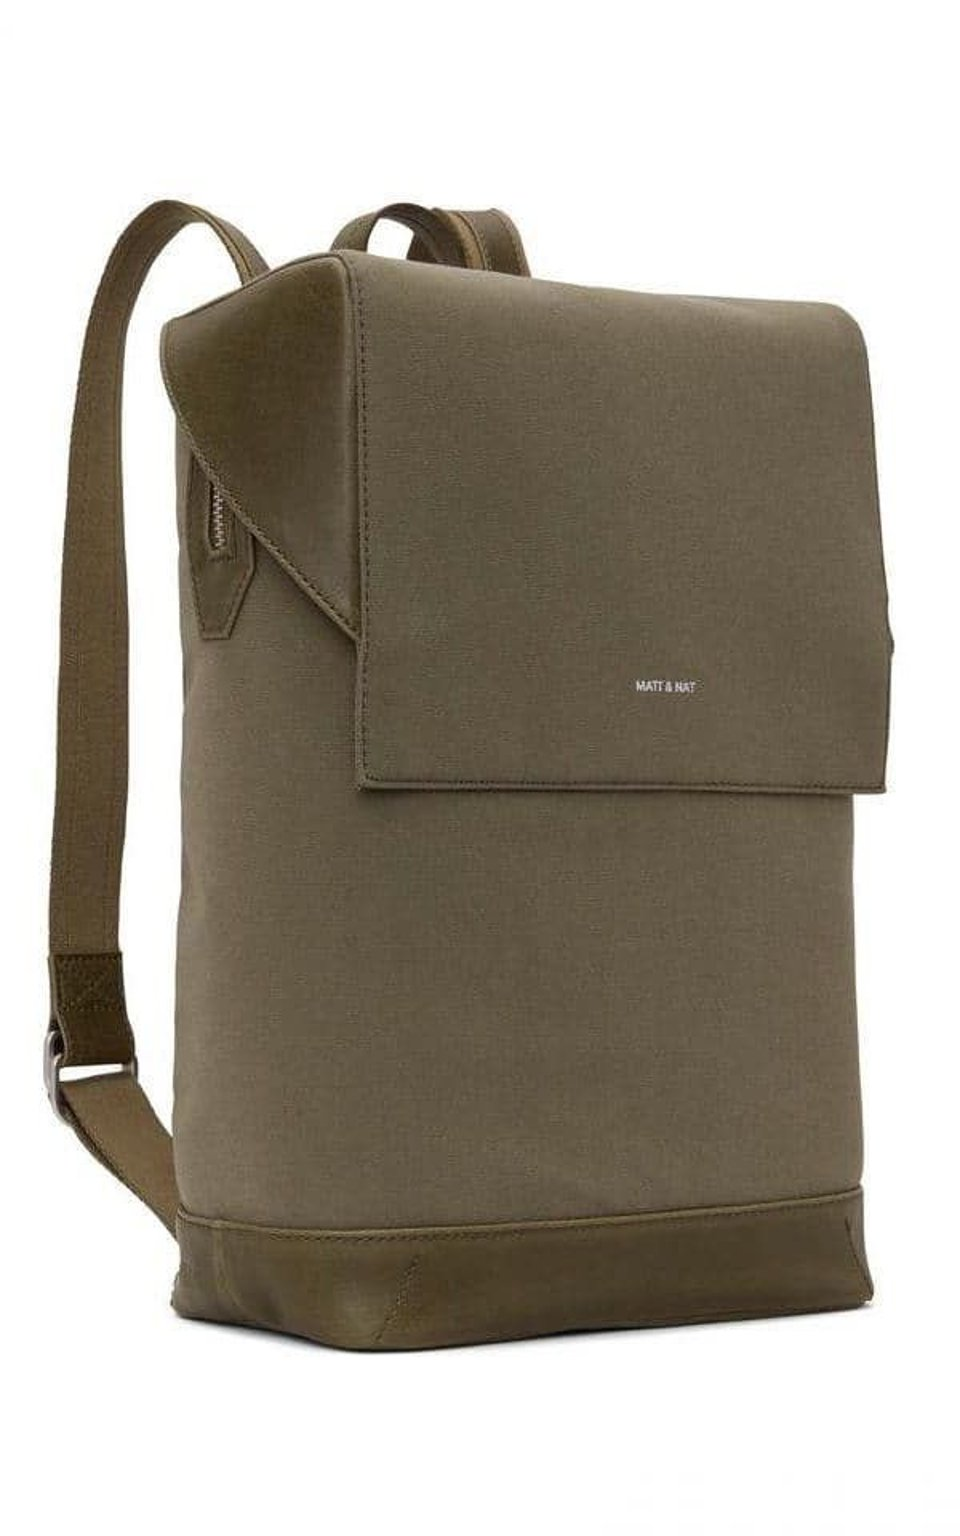 Backpack Hoxton Canvas #1